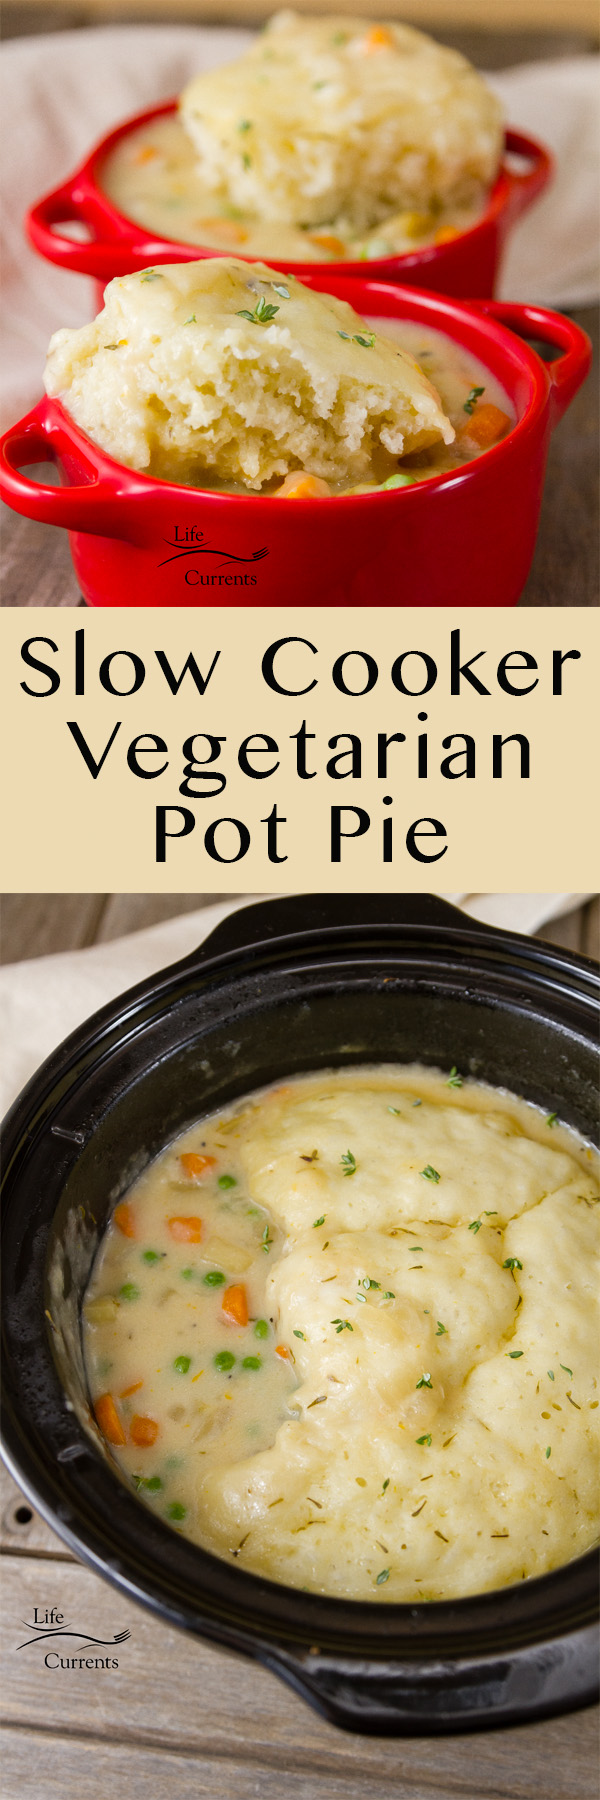 Comfort food is as close as your slow cooker (or crock pot). And, this Slow Cooker Vegetarian Pot Pie is easy to make and the whole family will love it.